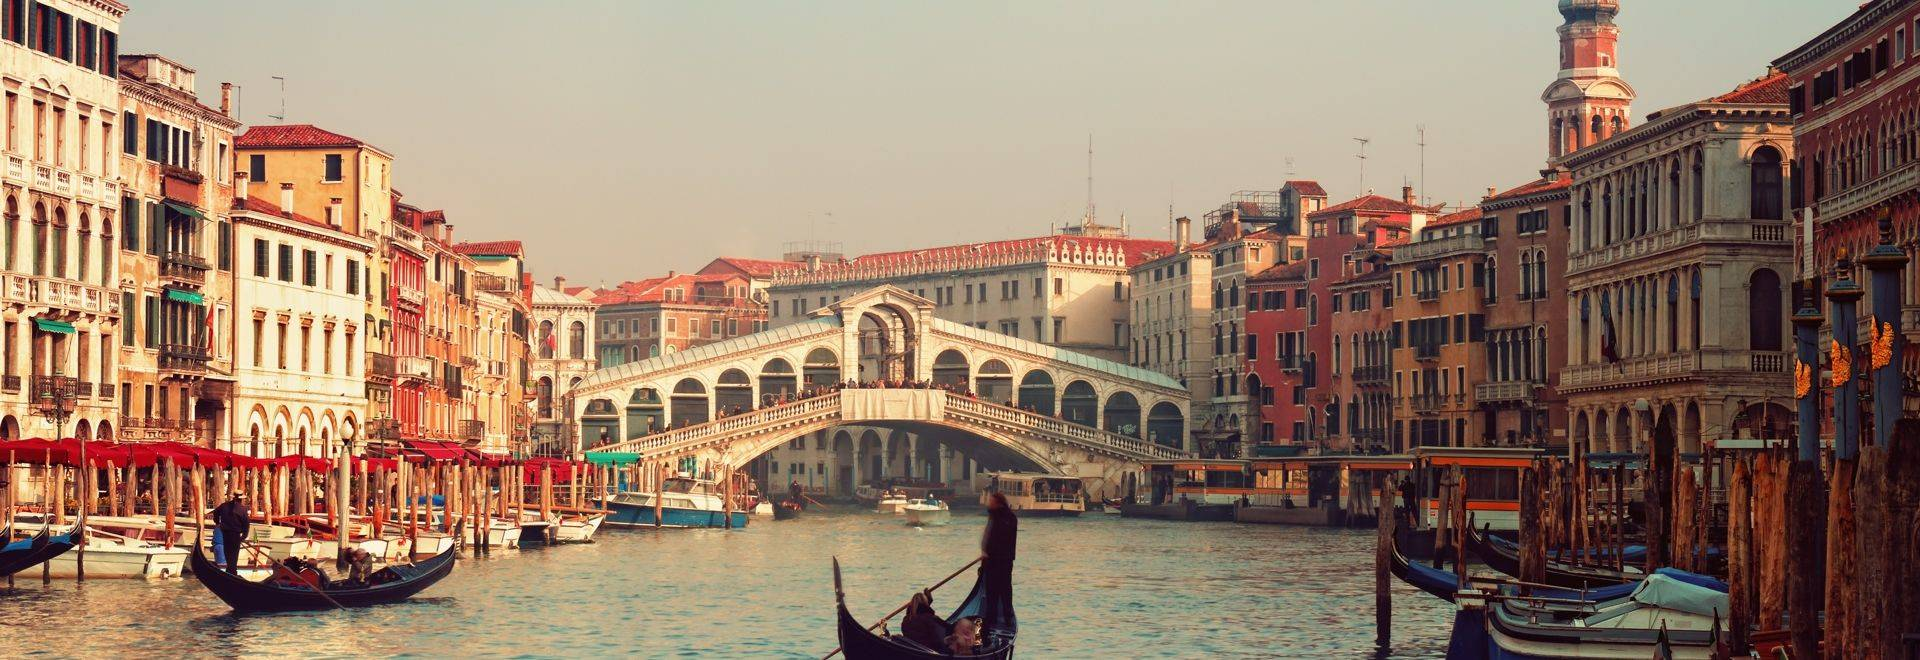 Shutterstock 93566209 Rialto Bridge And Gondolas In Venice